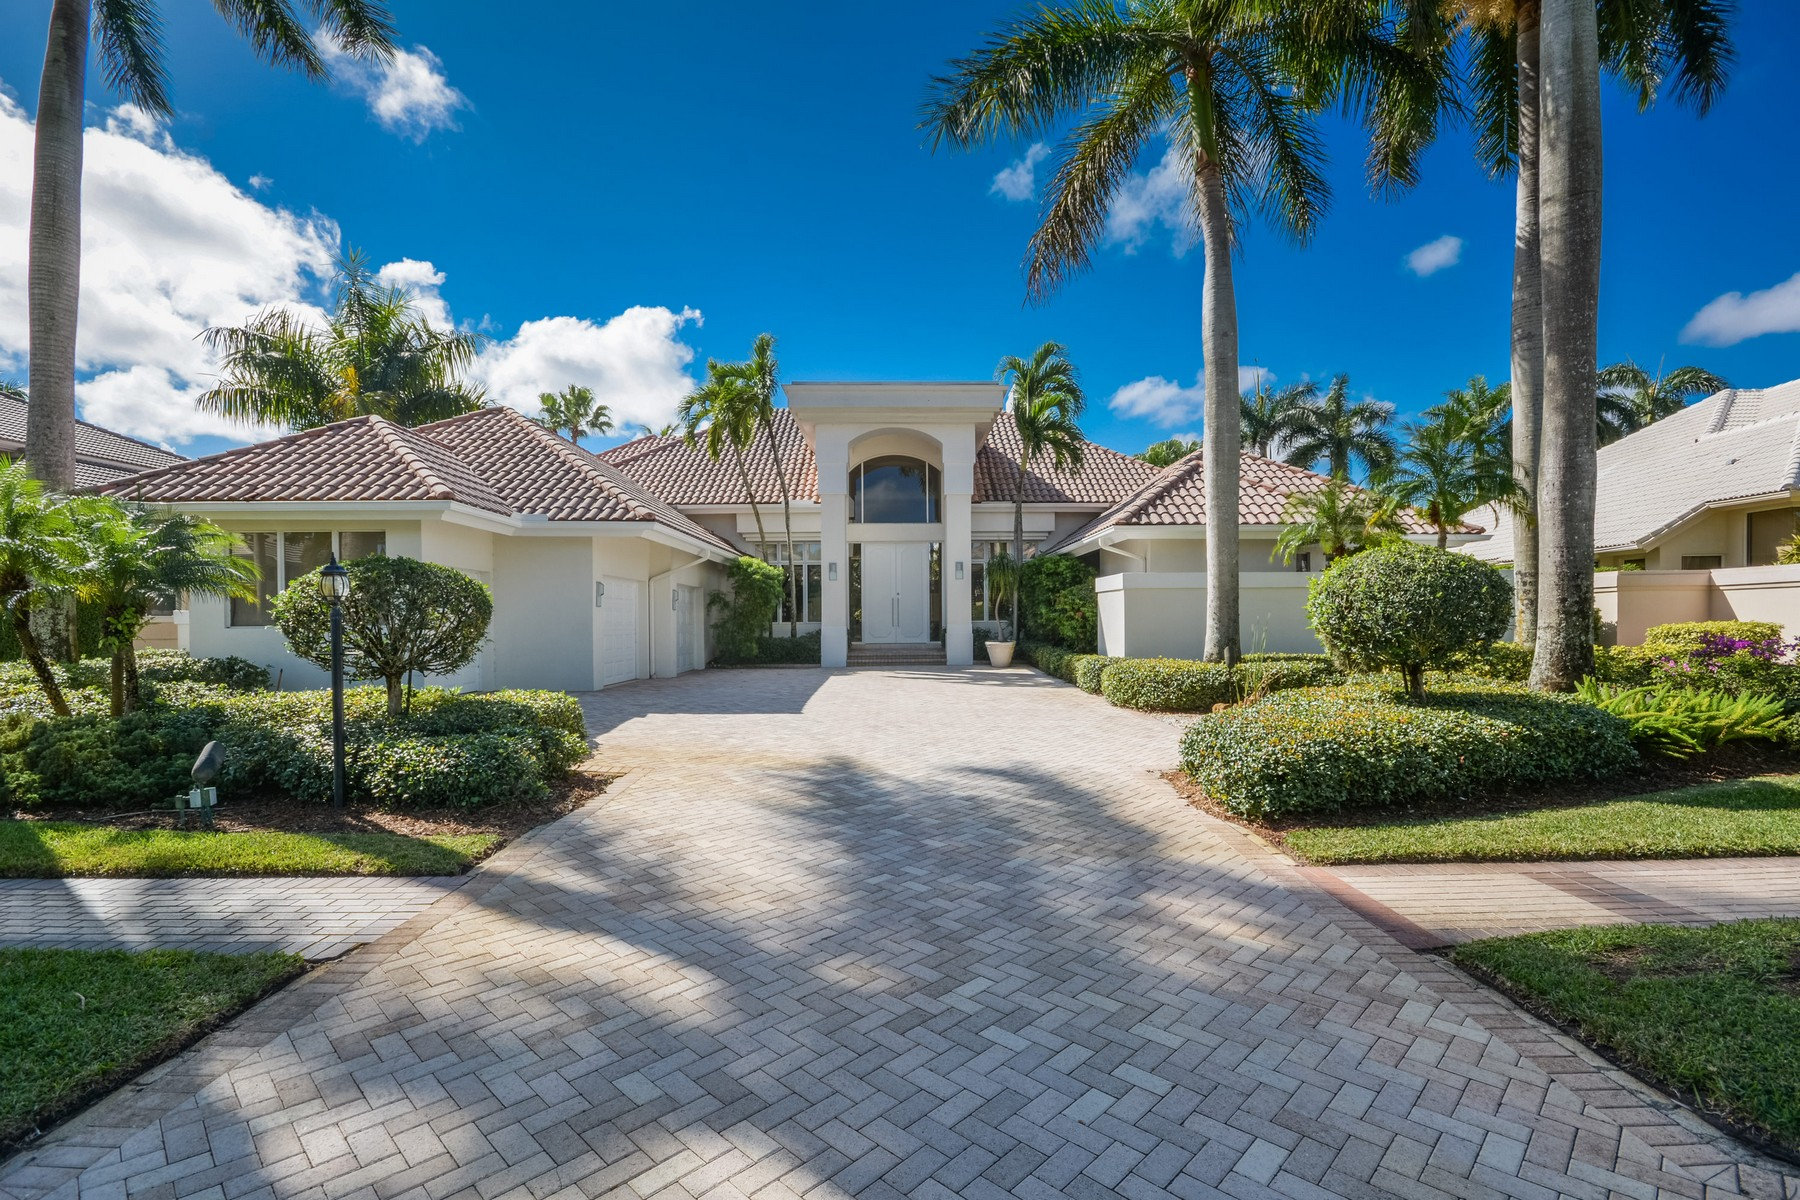 Casa Unifamiliar por un Venta en 7244 Queenferry Cir , Boca Raton, FL 33496 7244 Queenferry Cir Boca Raton, Florida, 33496 Estados Unidos